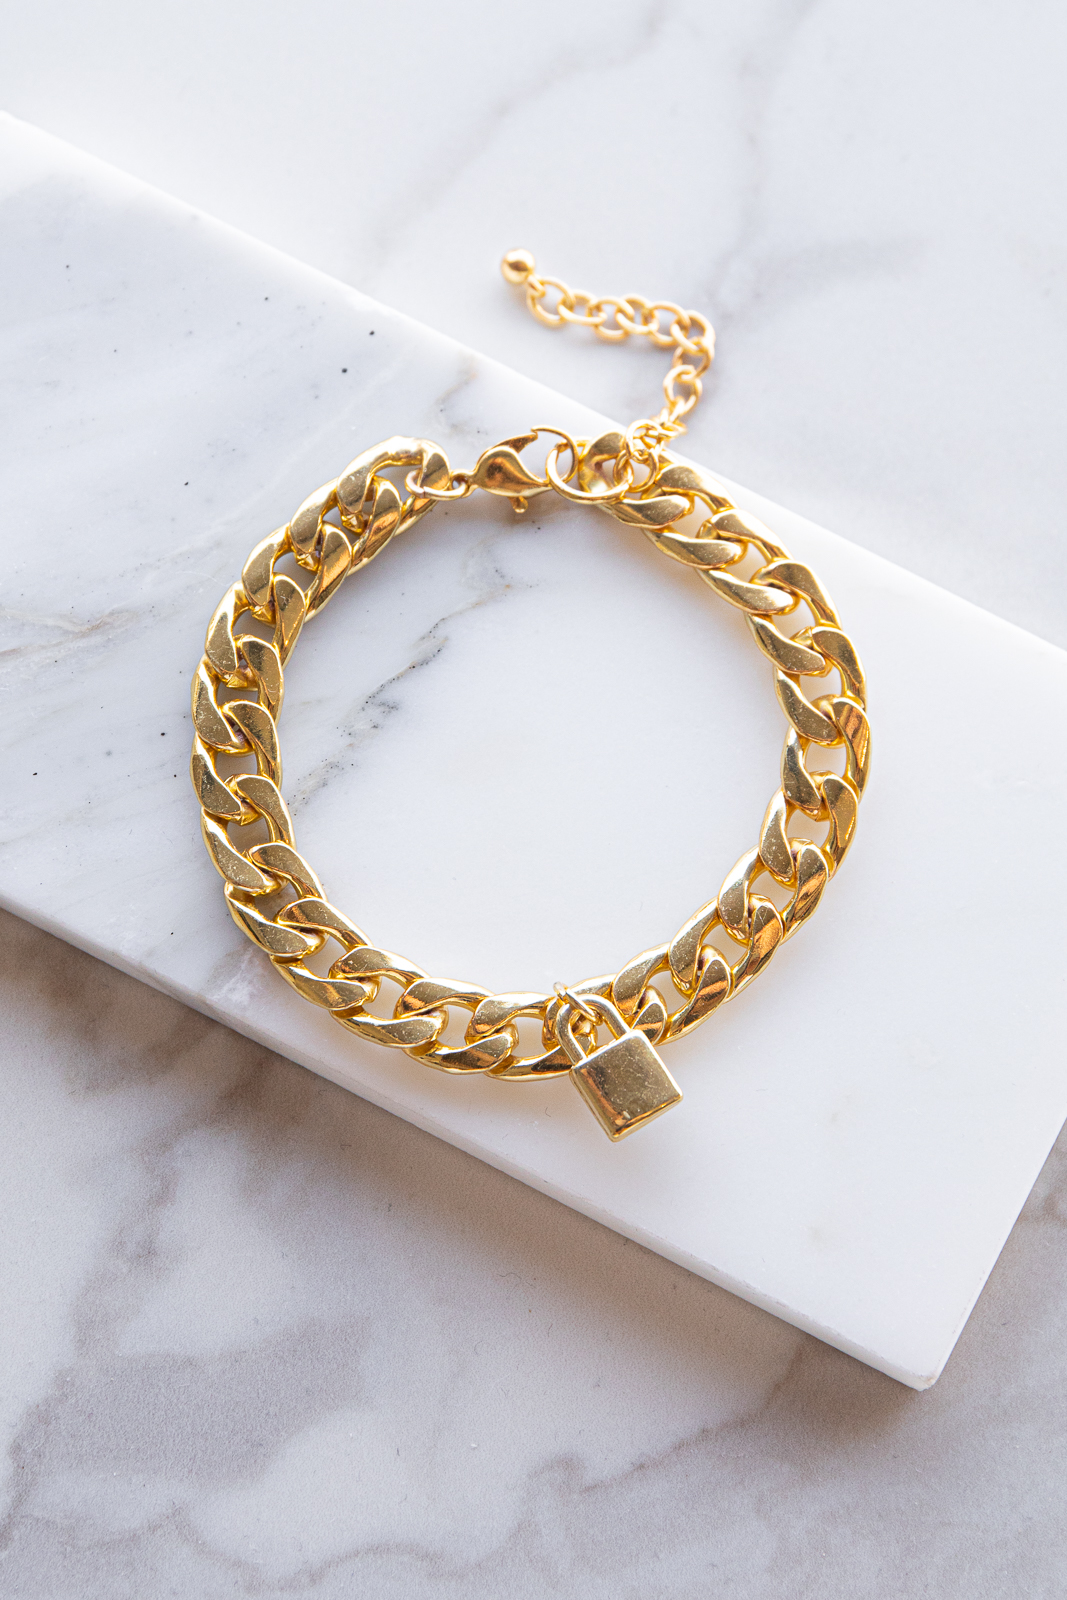 Gold Thick Chain Bracelet with Lock Shaped Pendant